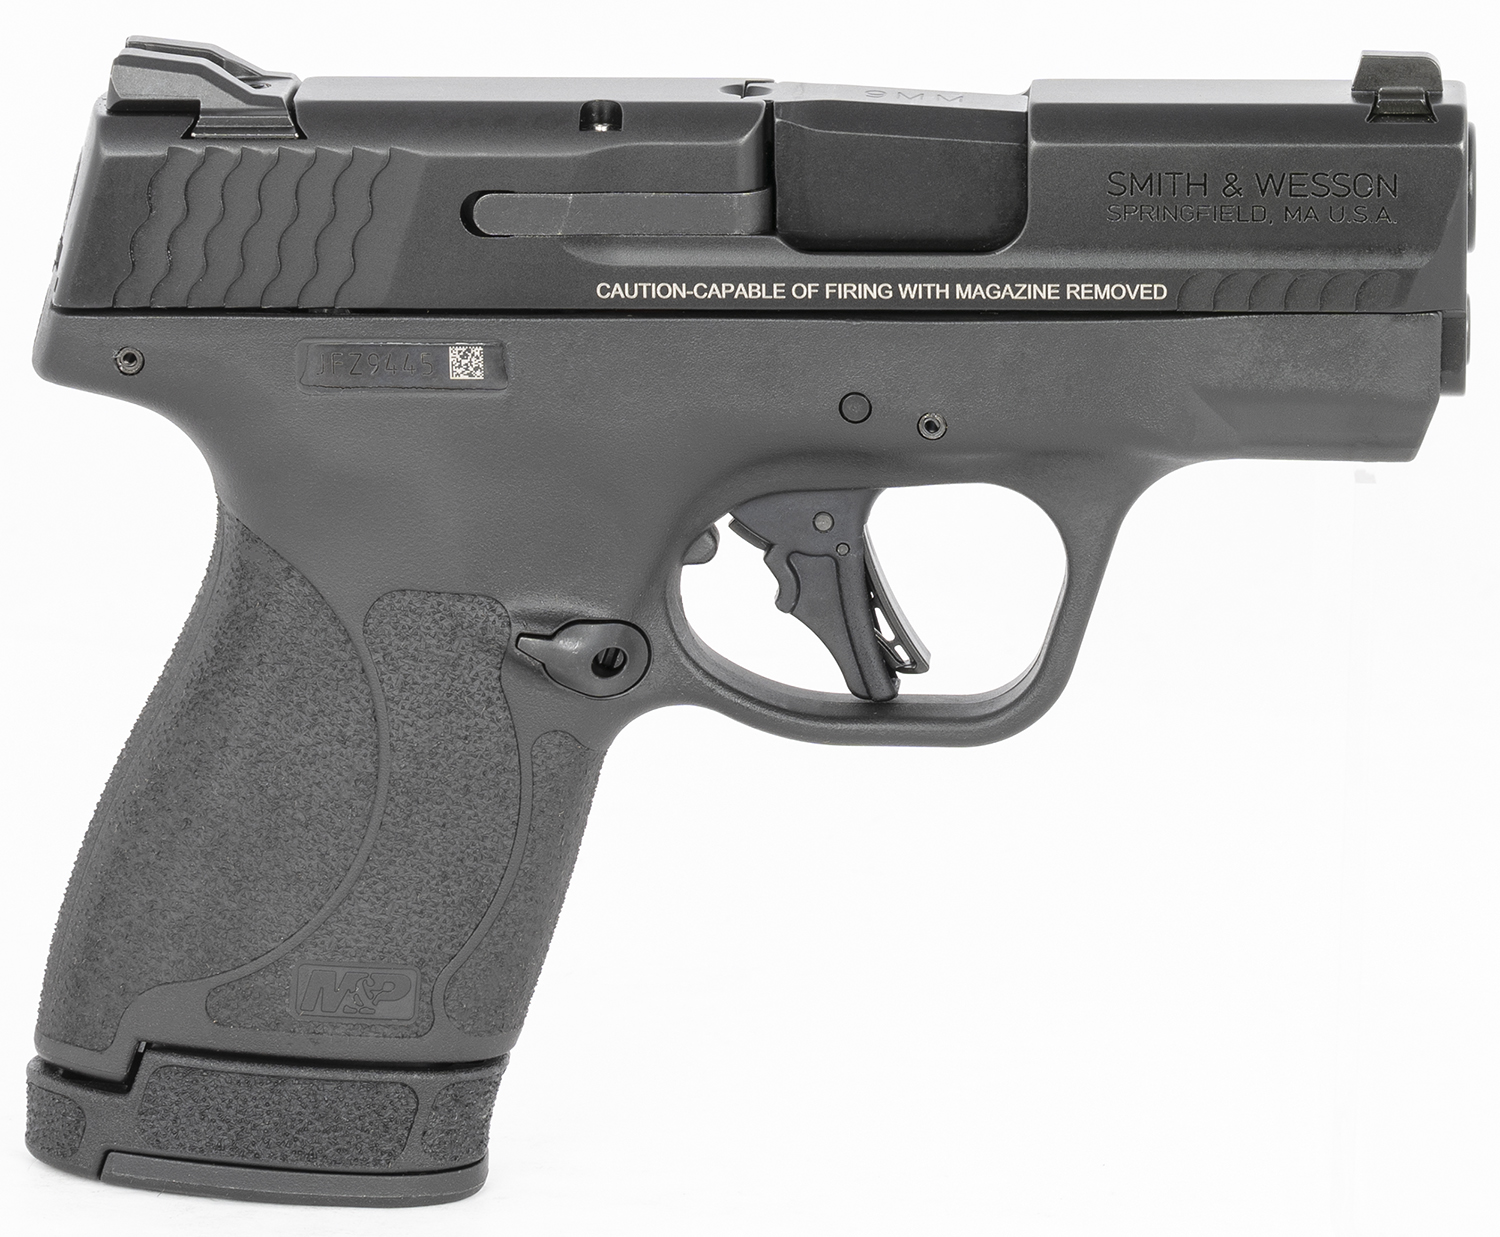 S&W M&P9 SHIELD + 9MM W/SAFETY 2-10 RD MAGS 10LB TRIGGER 3.1